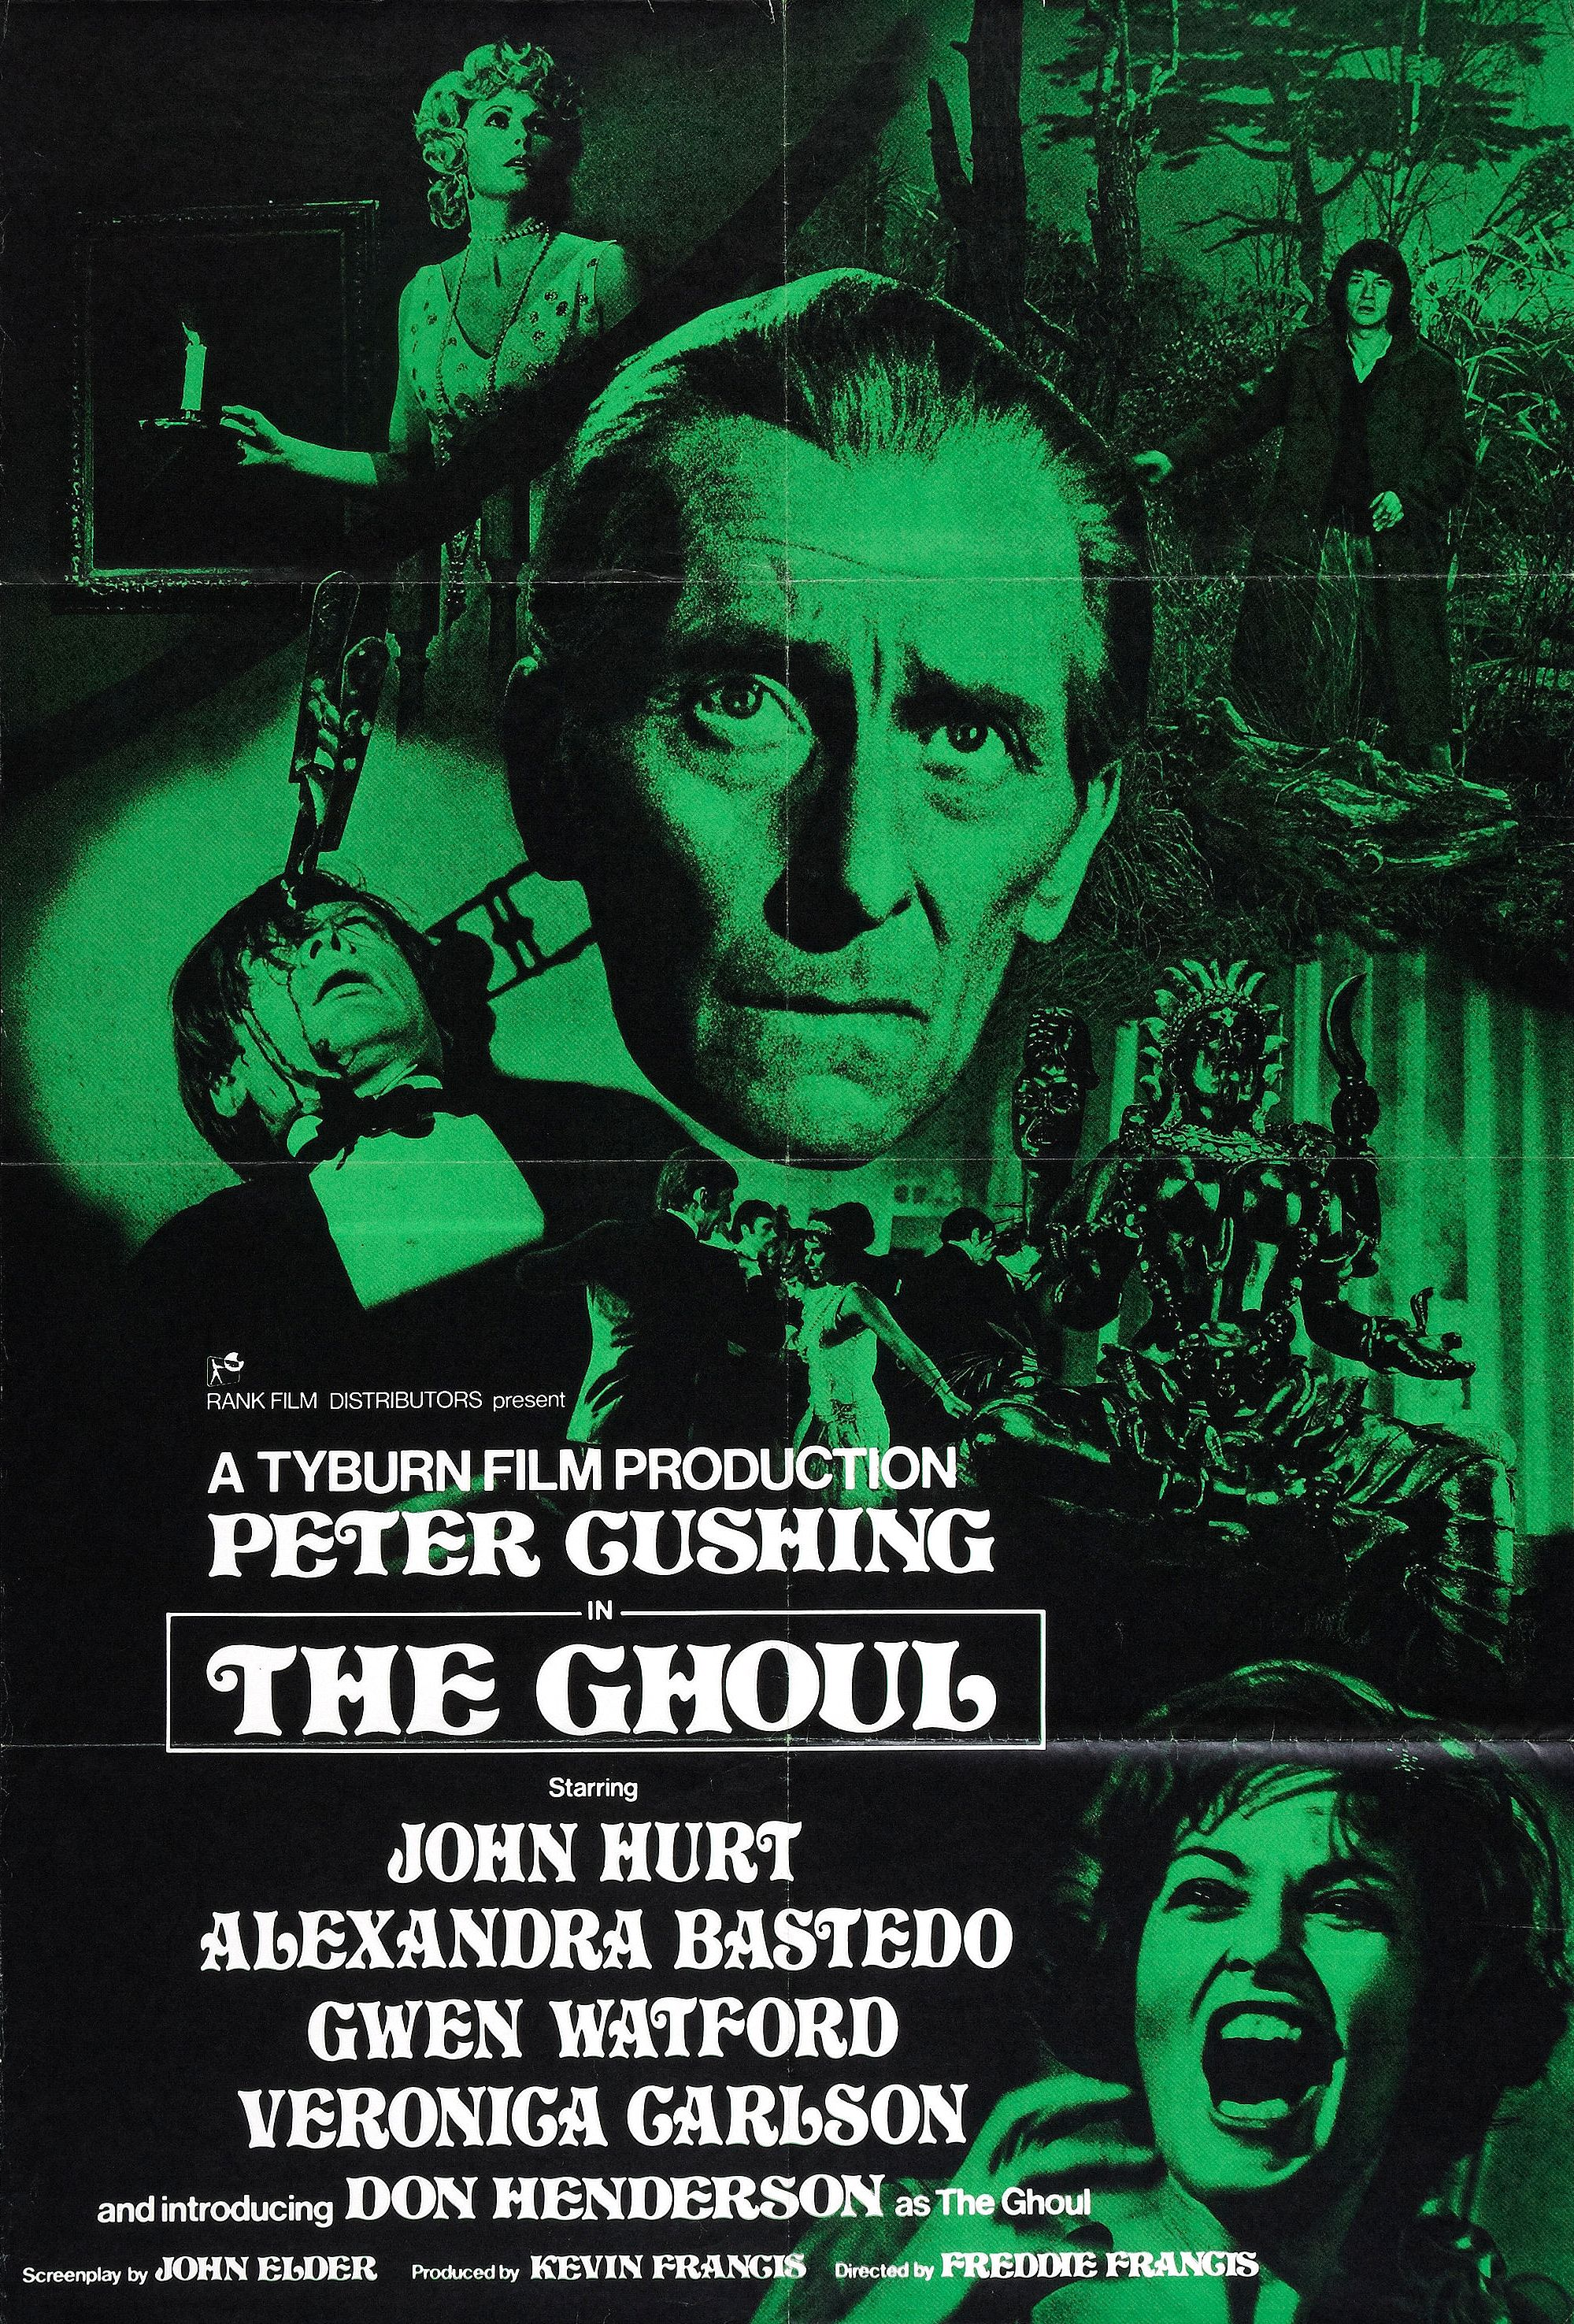 the-ghoul-1975-1kite44the-ghoul-1975-1the-ghoul-1975-12TYBURN FILM PRODUCTIONS 'THE GHOUL' (1975) Peter Cushing (Dr Lawrence), Alexandra Bastedo (Angela), Veronica Carlson (Daphne Wells-Hunter), John Hurt (Tom Rawlings), Gwen Watford (Ayah), Stewart Bevan (Billy), Ian McCulloch (Geoffrey), Don Henderson (The Ghoul)the-ghoul-1975-26